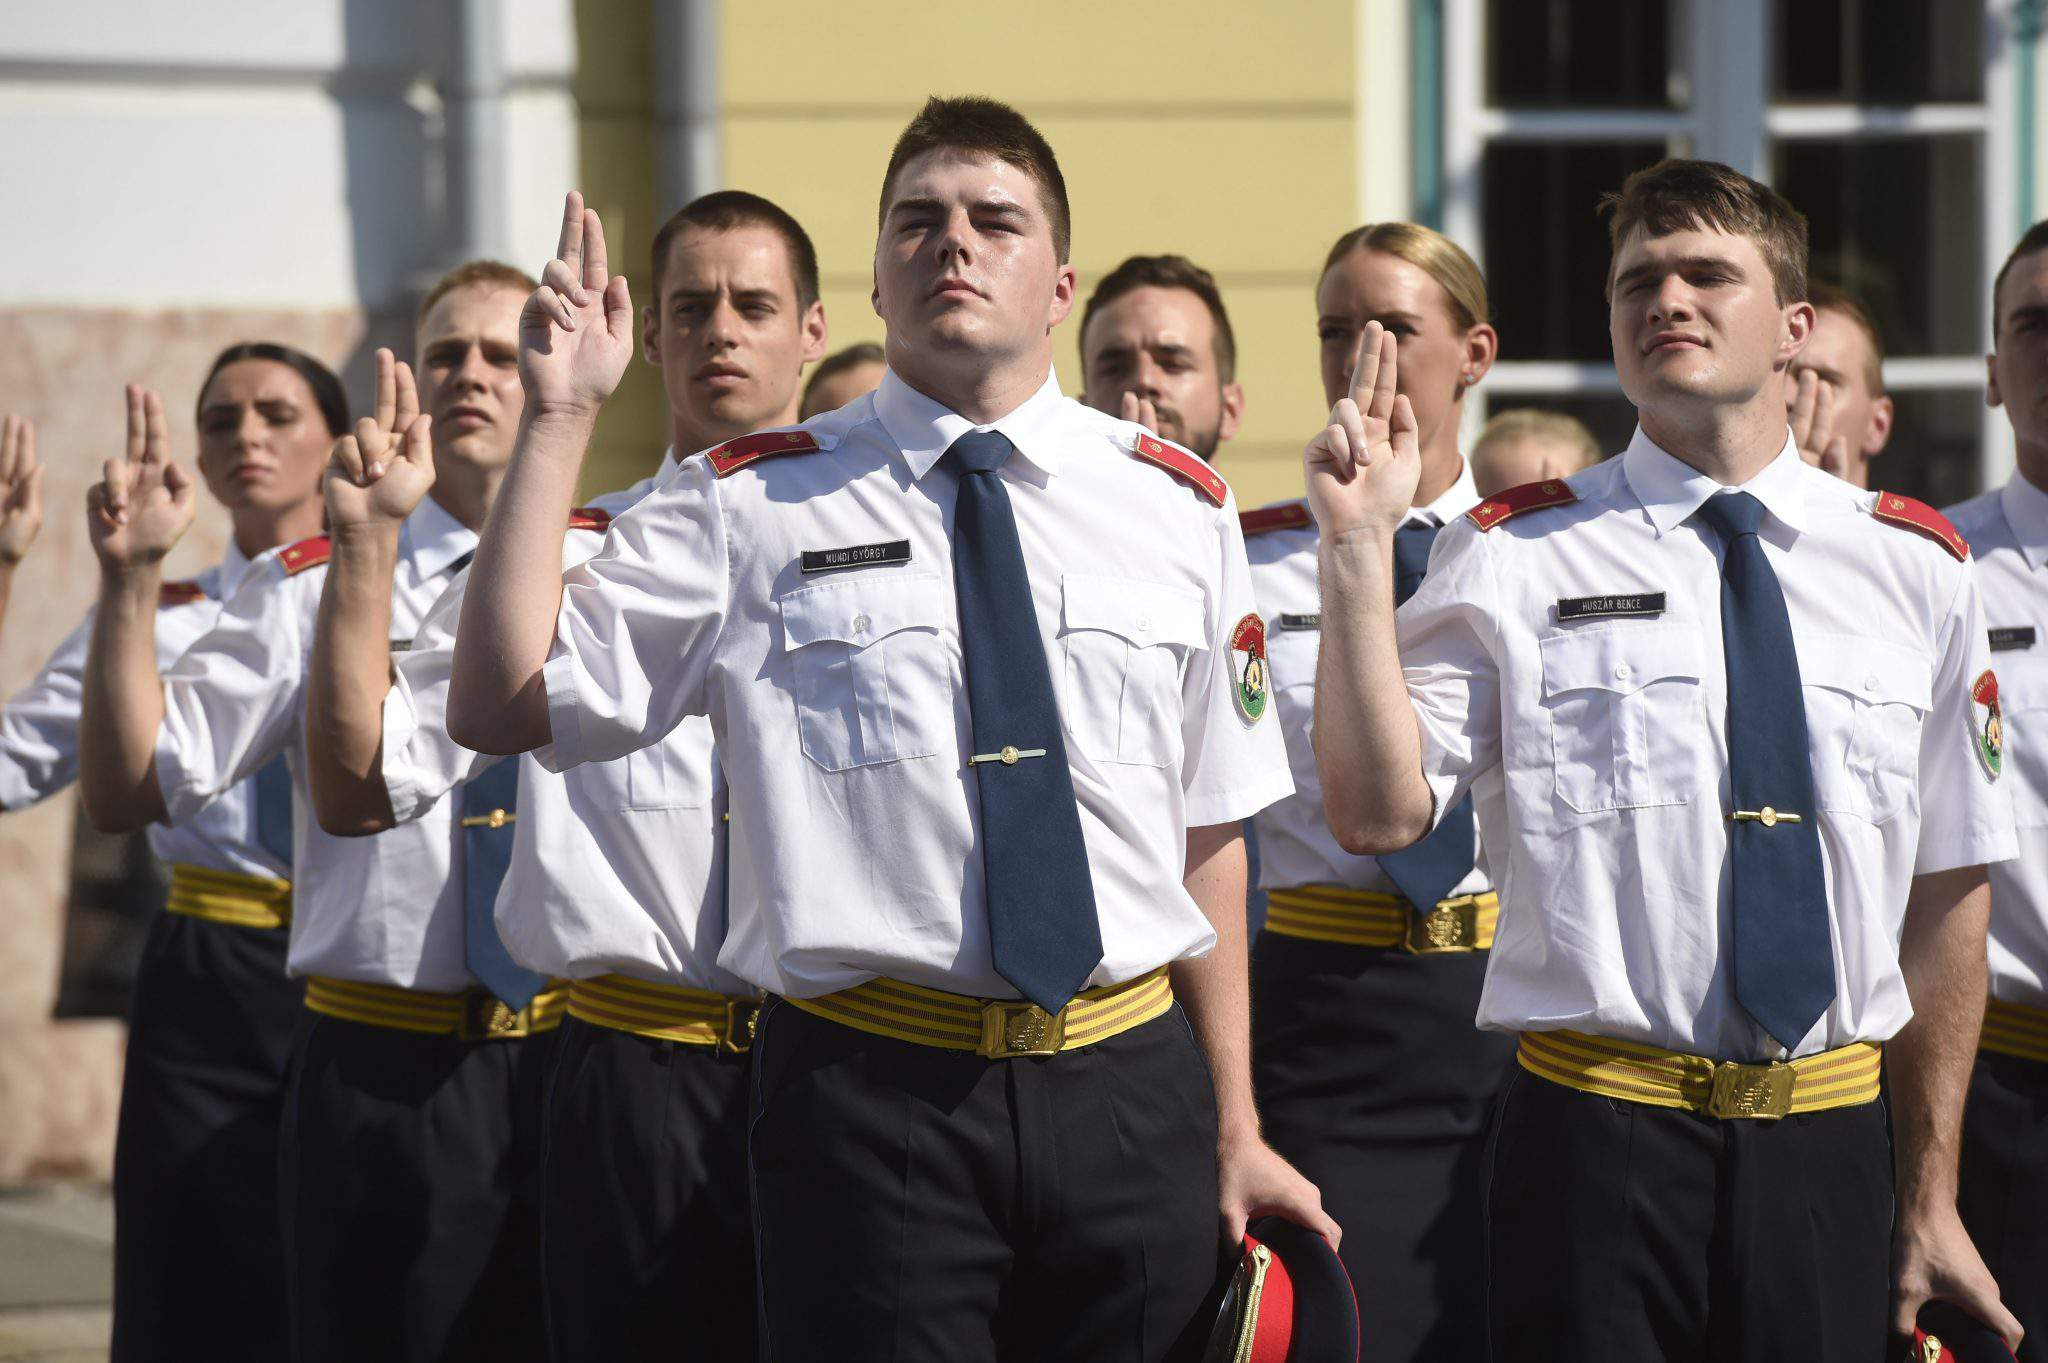 Oath-taking ceremony of police officers held at Budapest's Castle District